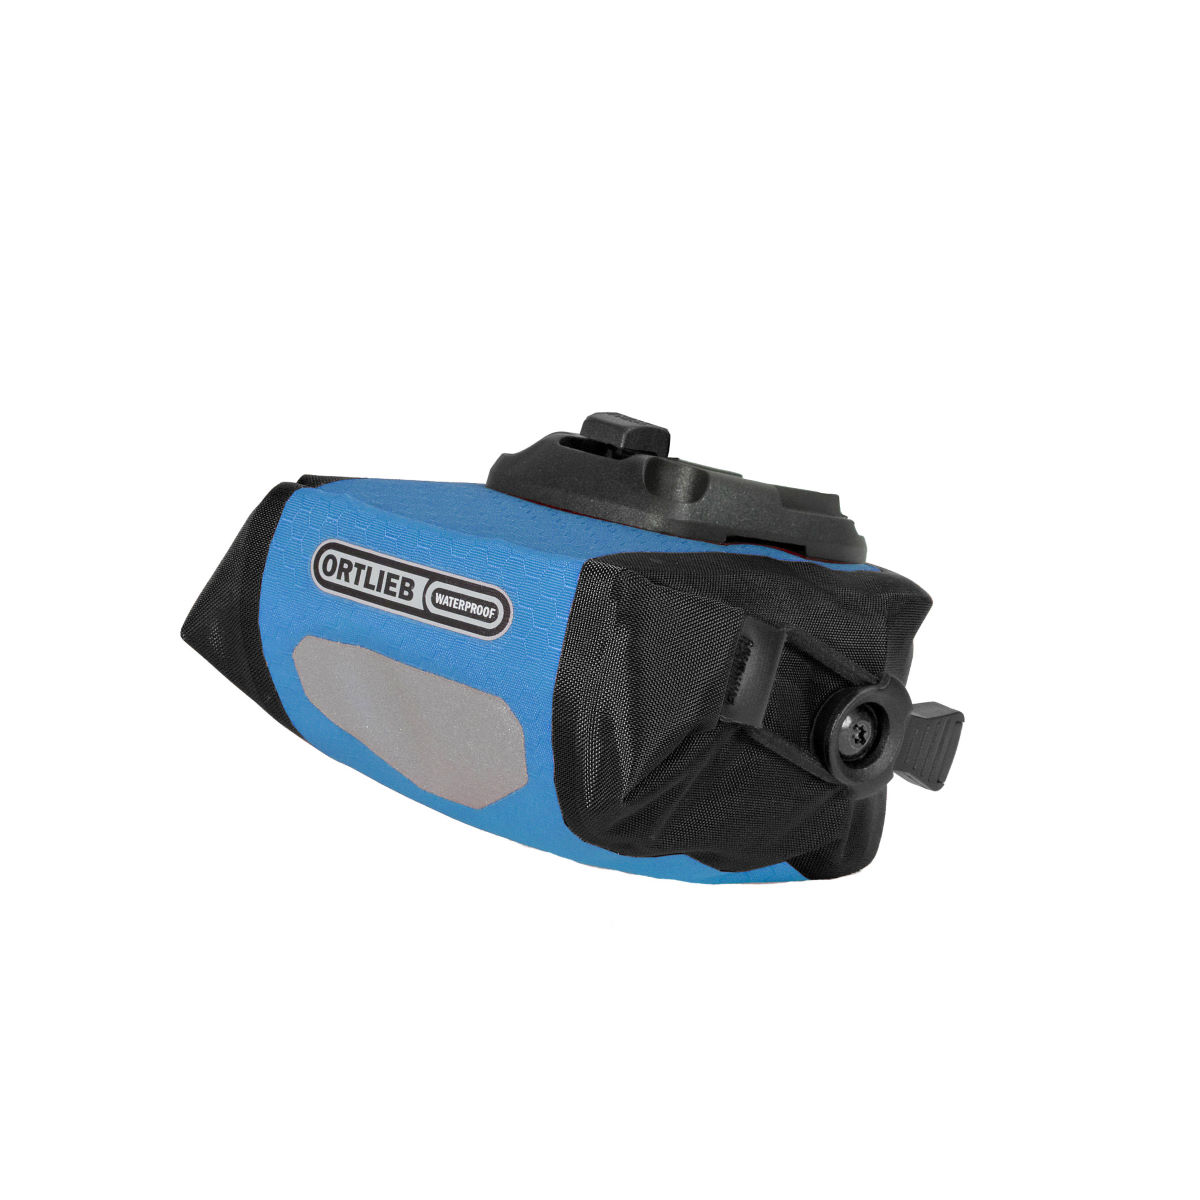 Ortlieb Micro Saddle Bag 2013